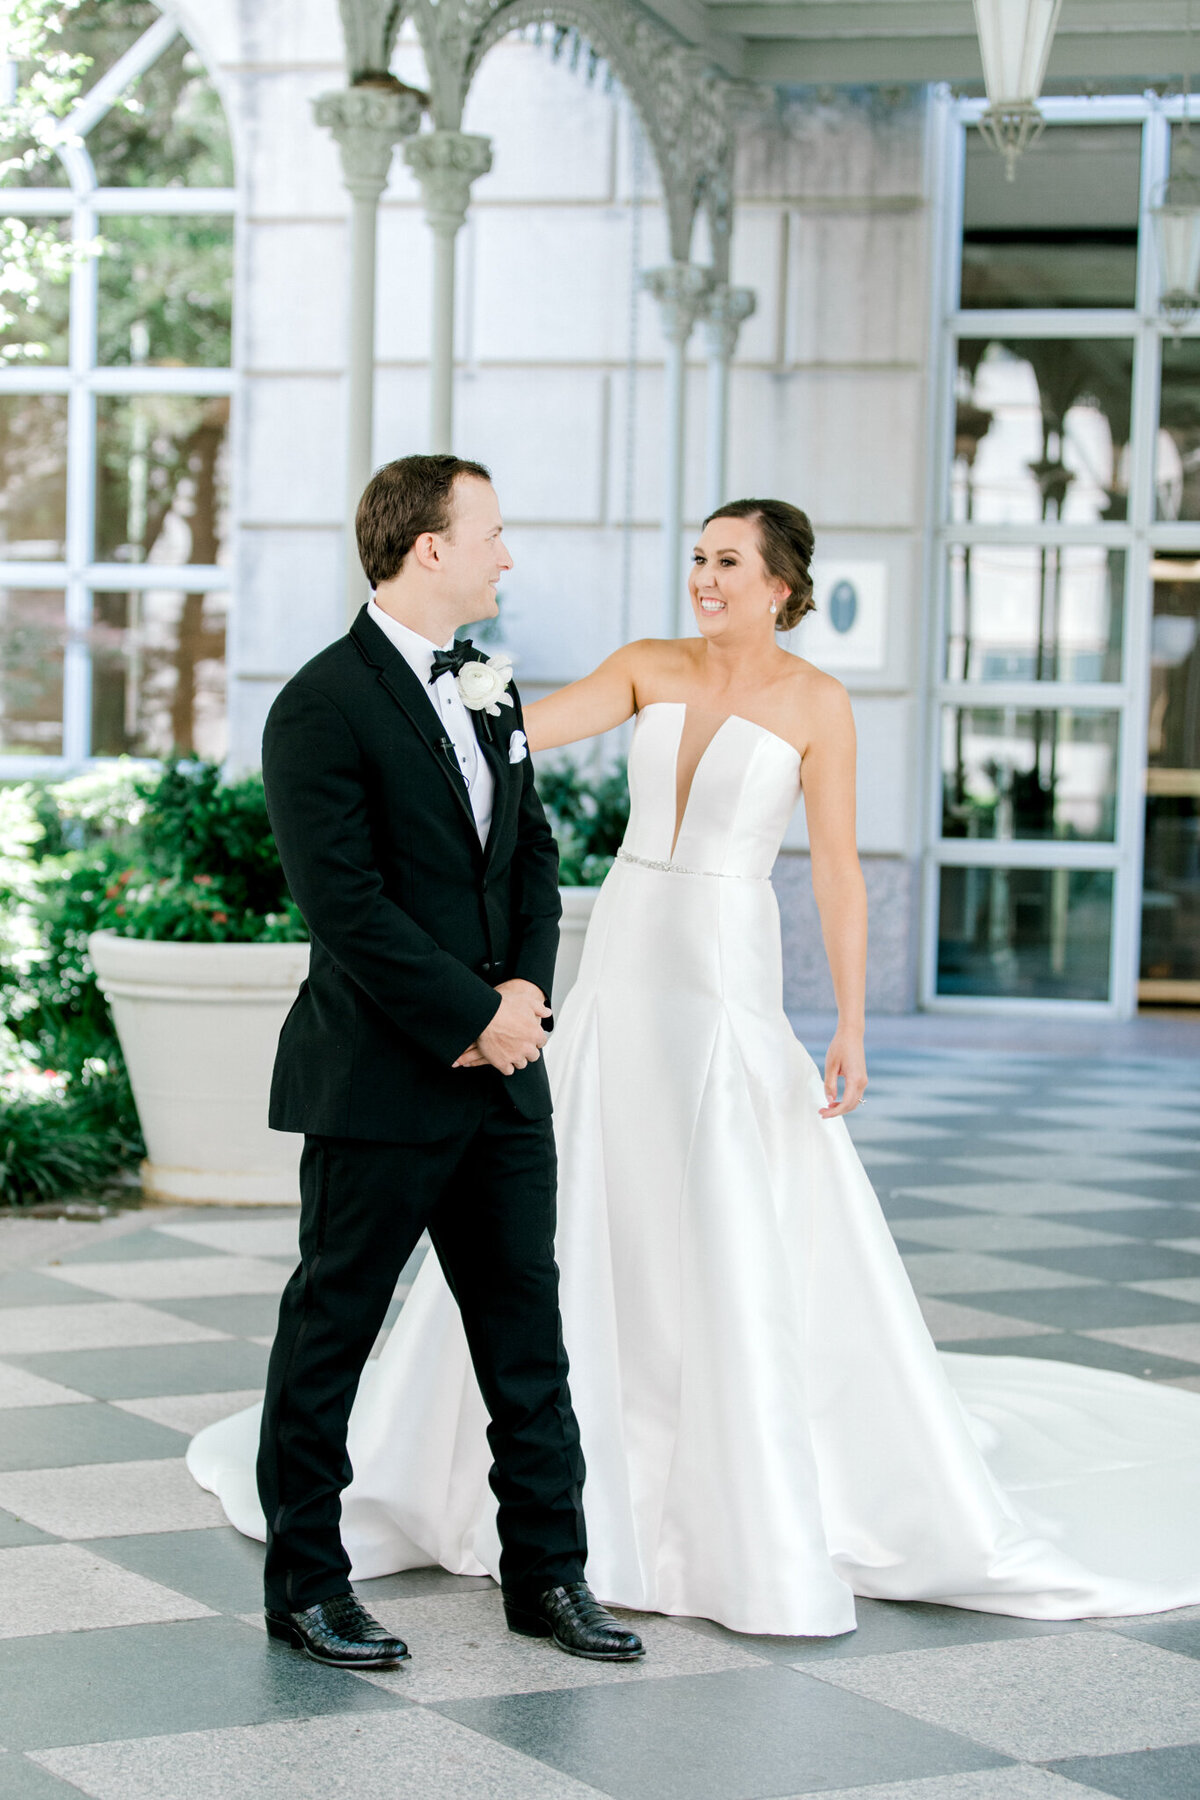 Wedding at the Crescent Court Hotel and Highland Park United Methodist Church in Dallas | Sami Kathryn Photography | DFW Wedding Photographer-50